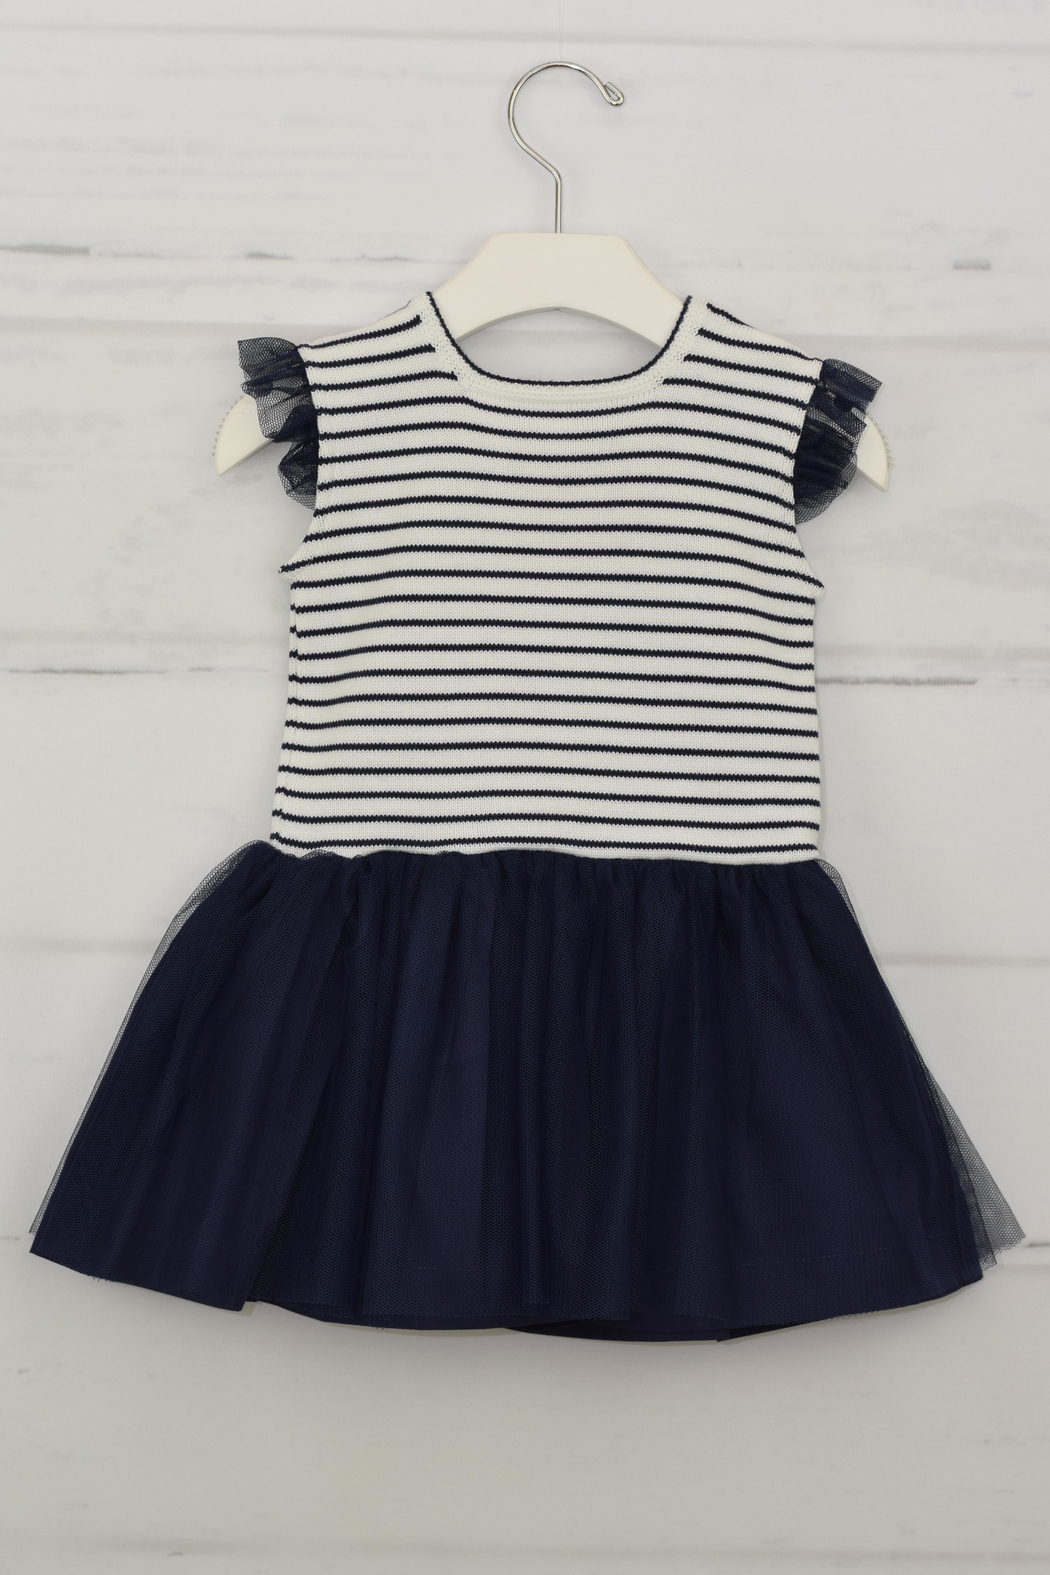 Granlei 1980 Nautical Stipes Dress - Main Image